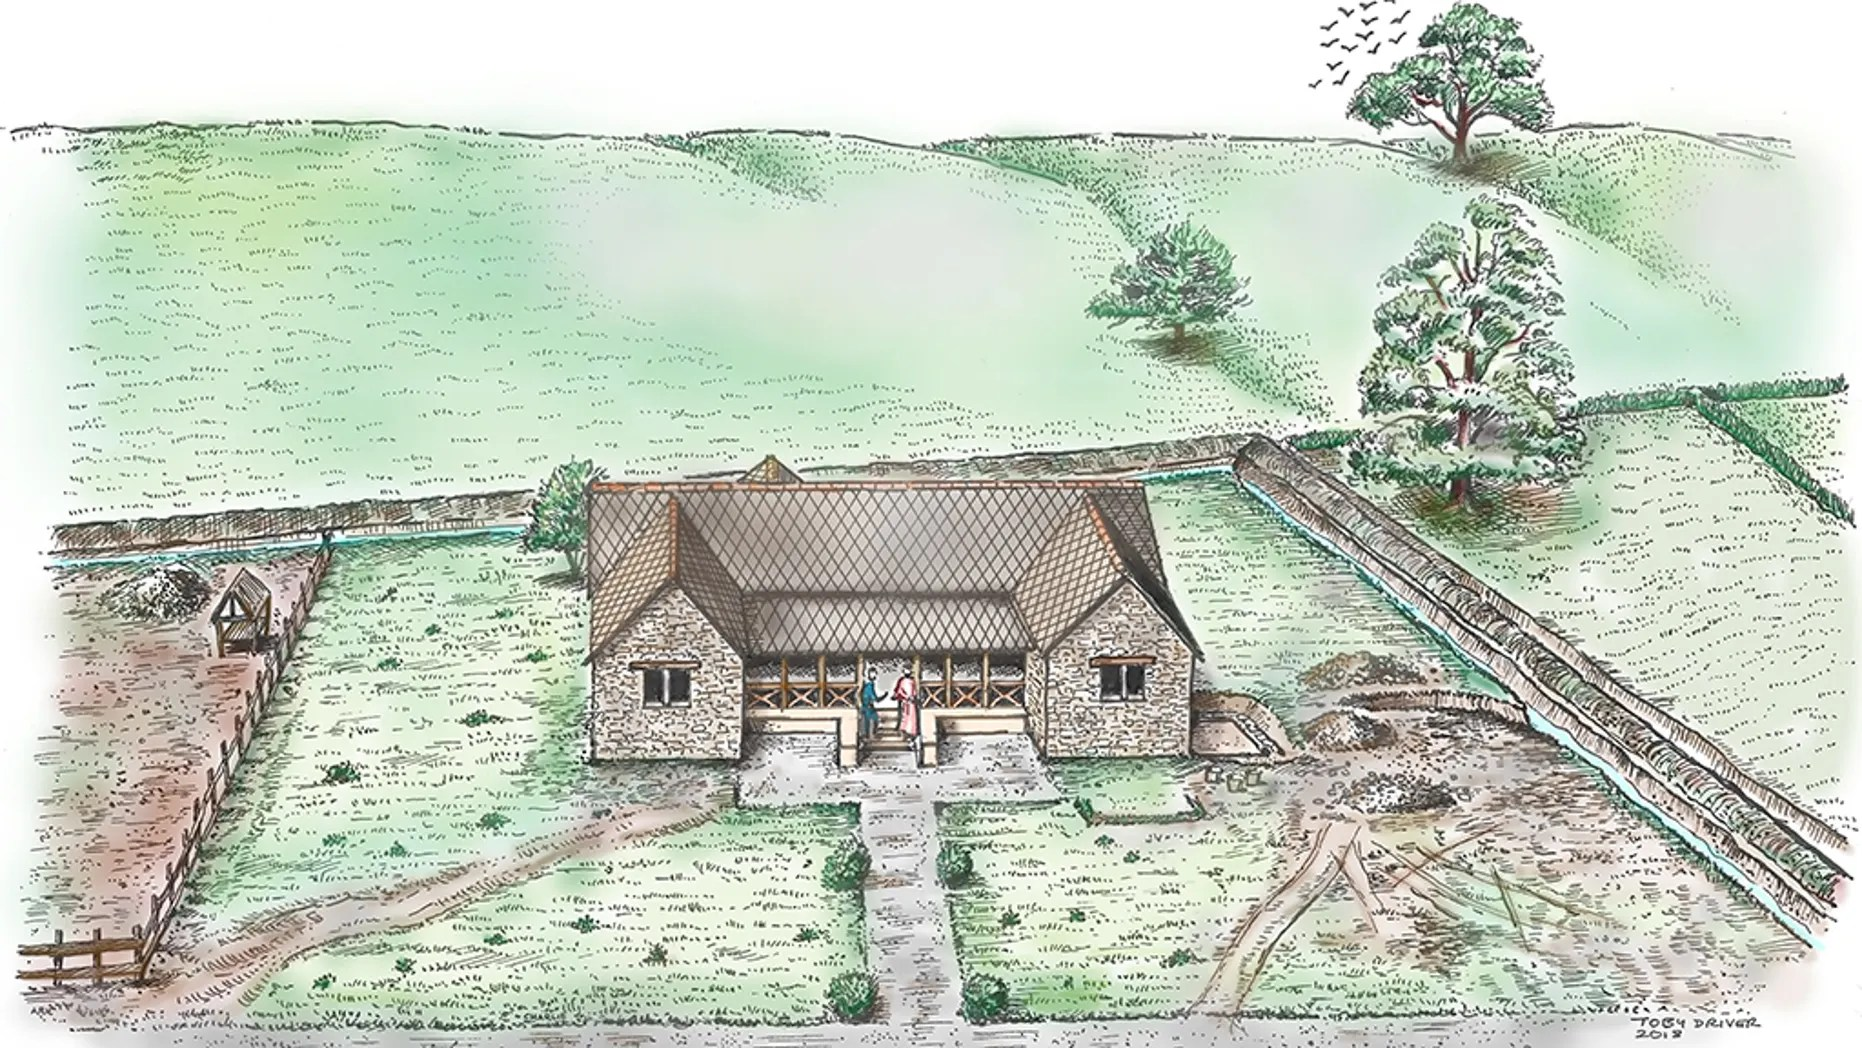 Illustration of Abermagwr Roman villa. Reconstruction of the house or domus by archaeologist Dr. Toby Driver showing a simple garden and graveled path surrounding the villa, and the wider villa enclosure which probably served as a yard for livestock. (Crown copyright: Royal Commission on the Ancient and Historical Monuments of Wales [RCAHMW])